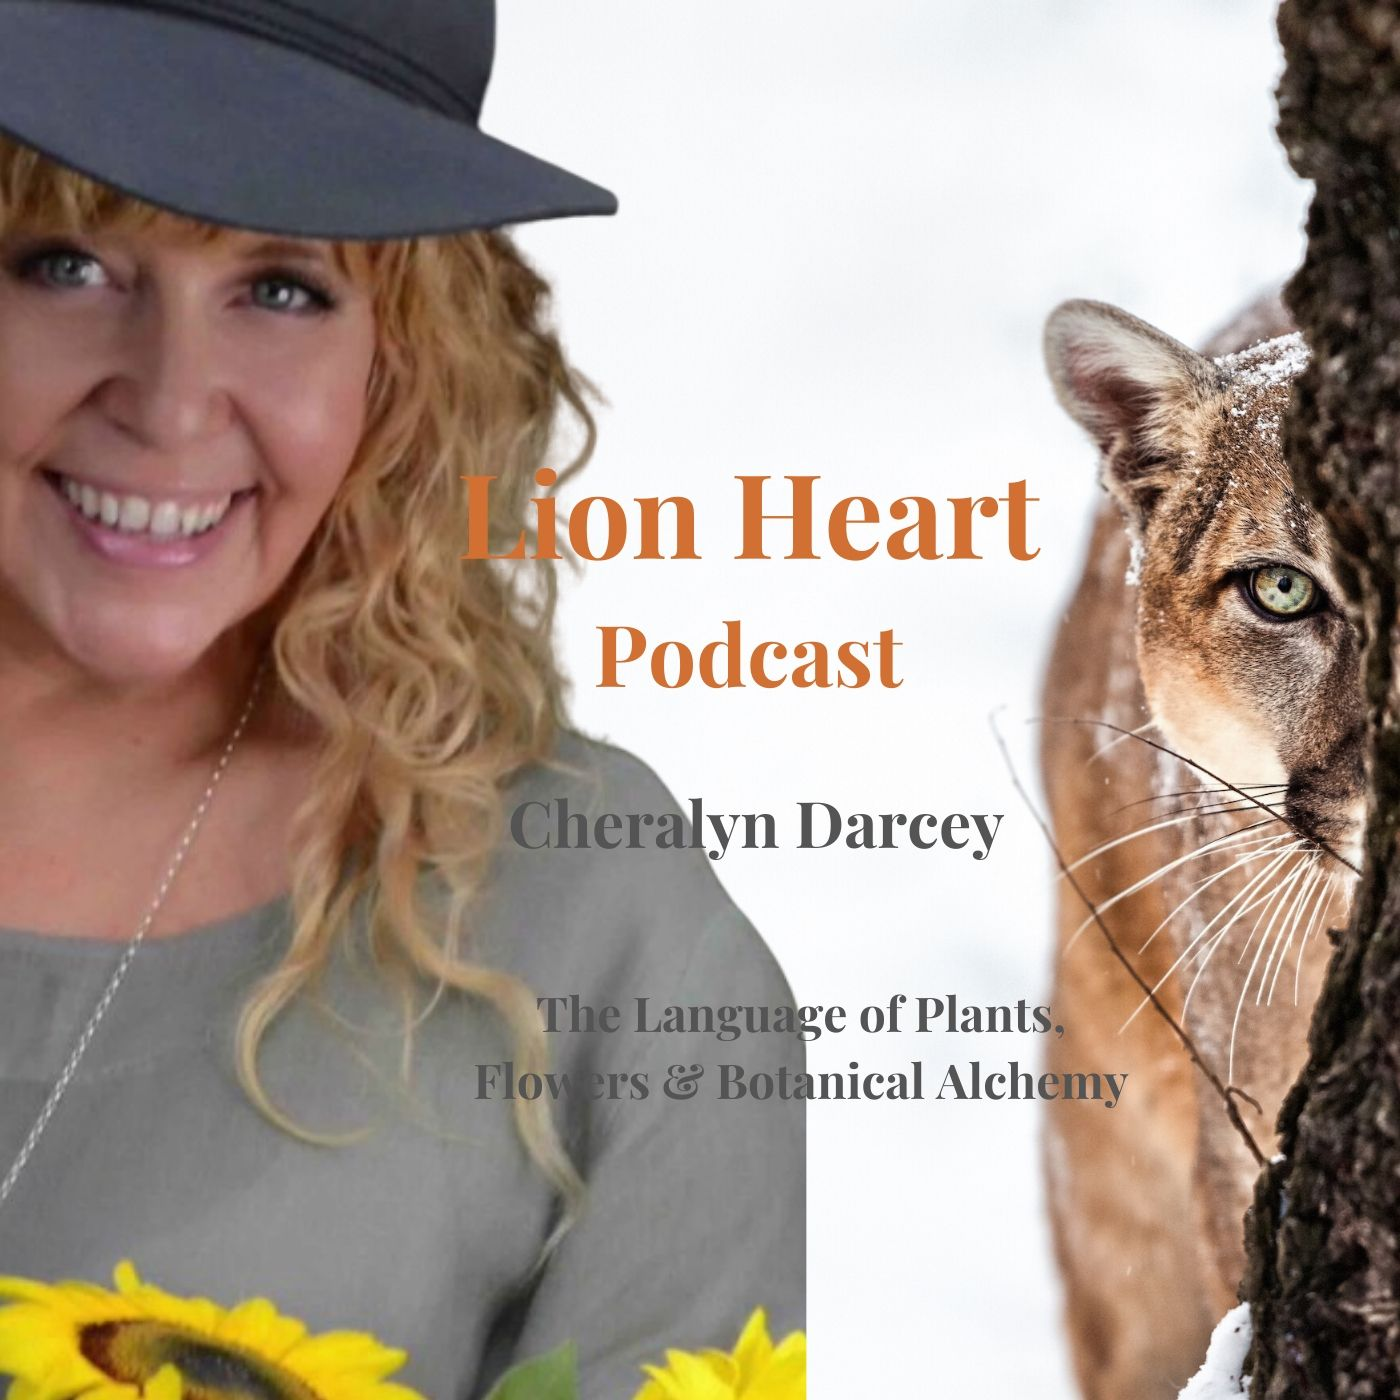 The Language of Plants, Flowers and Botanical Alchemy with Cheralyn Darcey - E6